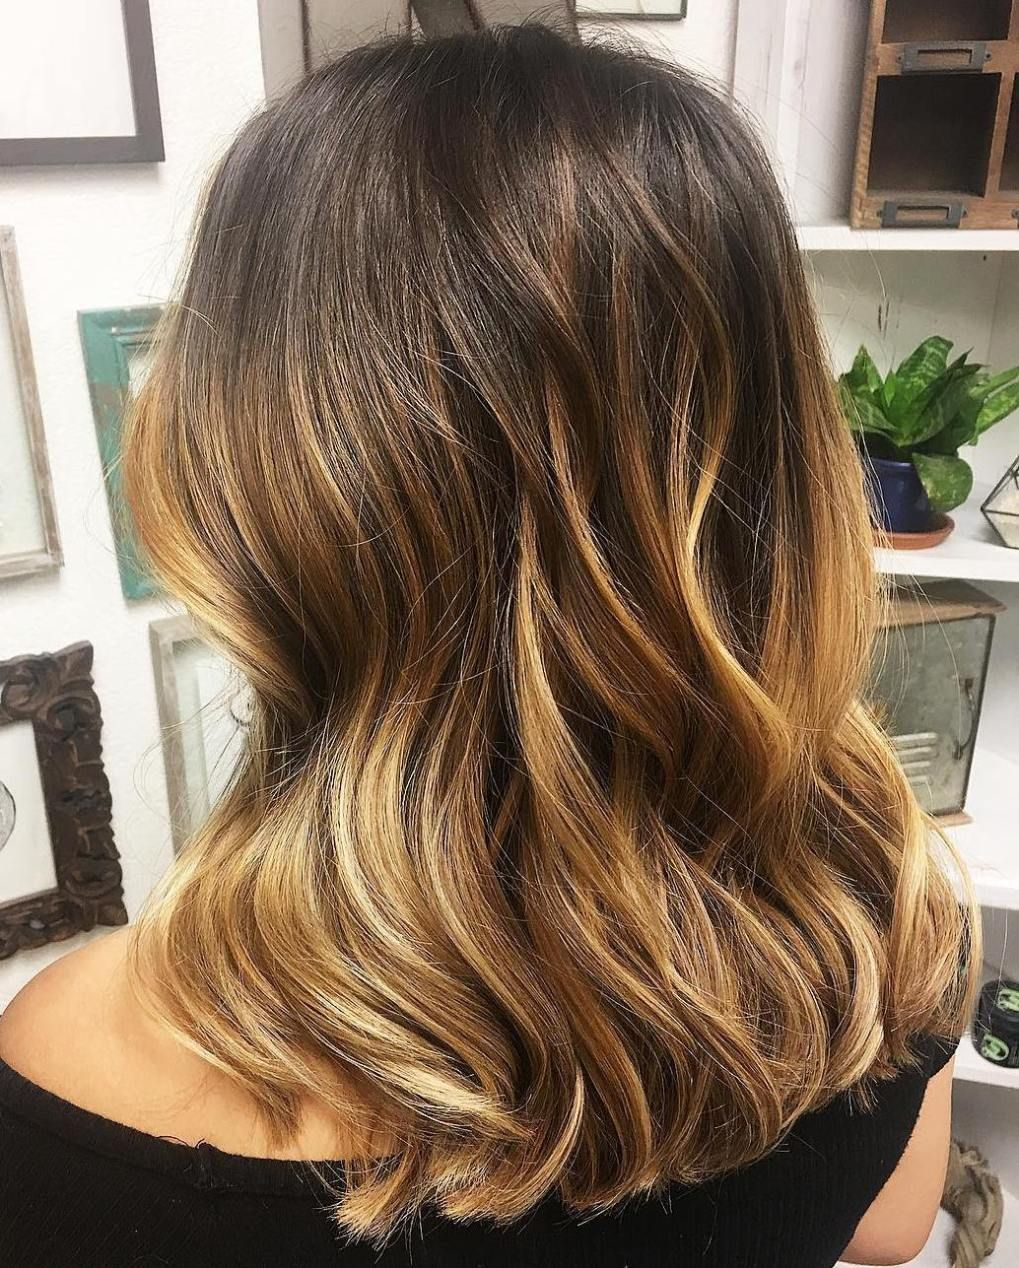 20 Honey Balayage Pictures That Really Inspire To Try Highlights Honey Balayage Blonde Balayage Honey Hair